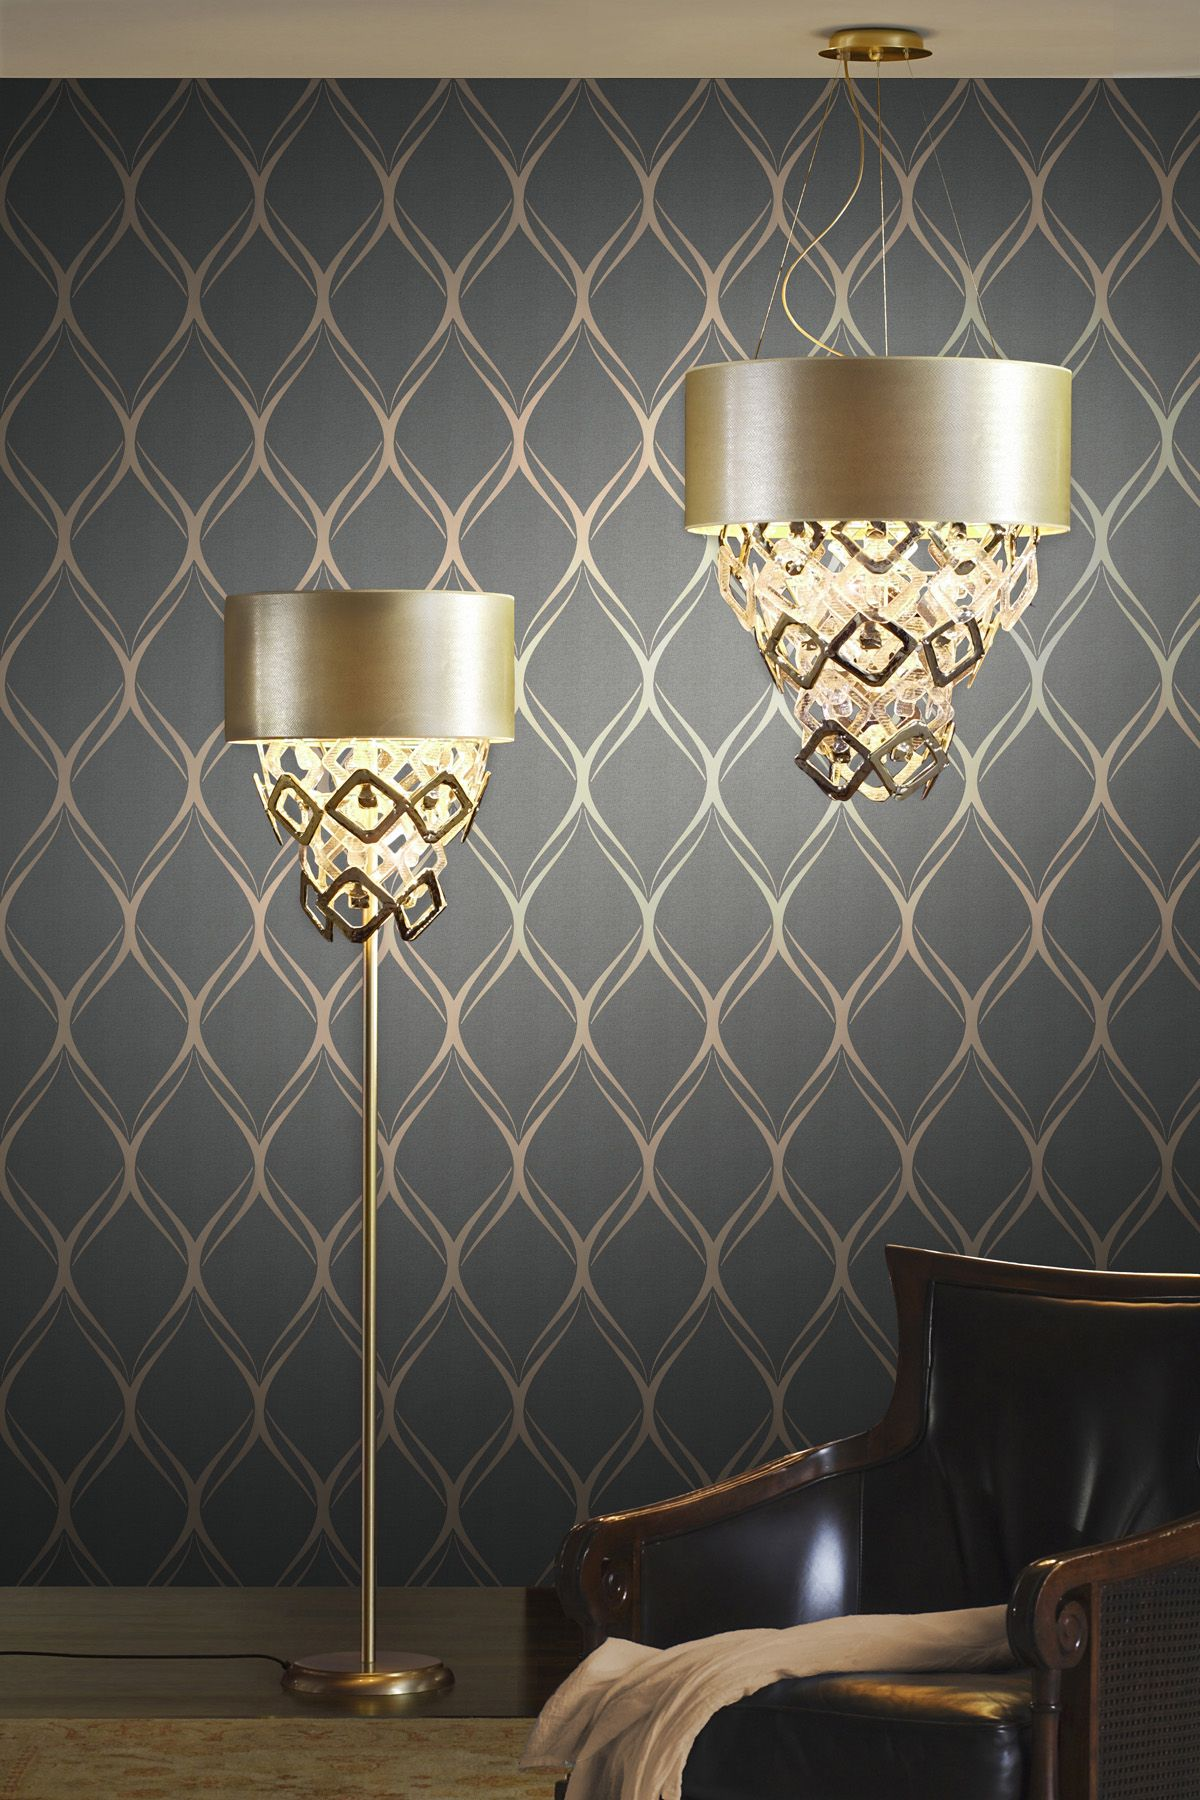 Wallpaper Living Room Wall How To Decorate A On Budget Luxe Decor Idea With Dreamy Feature